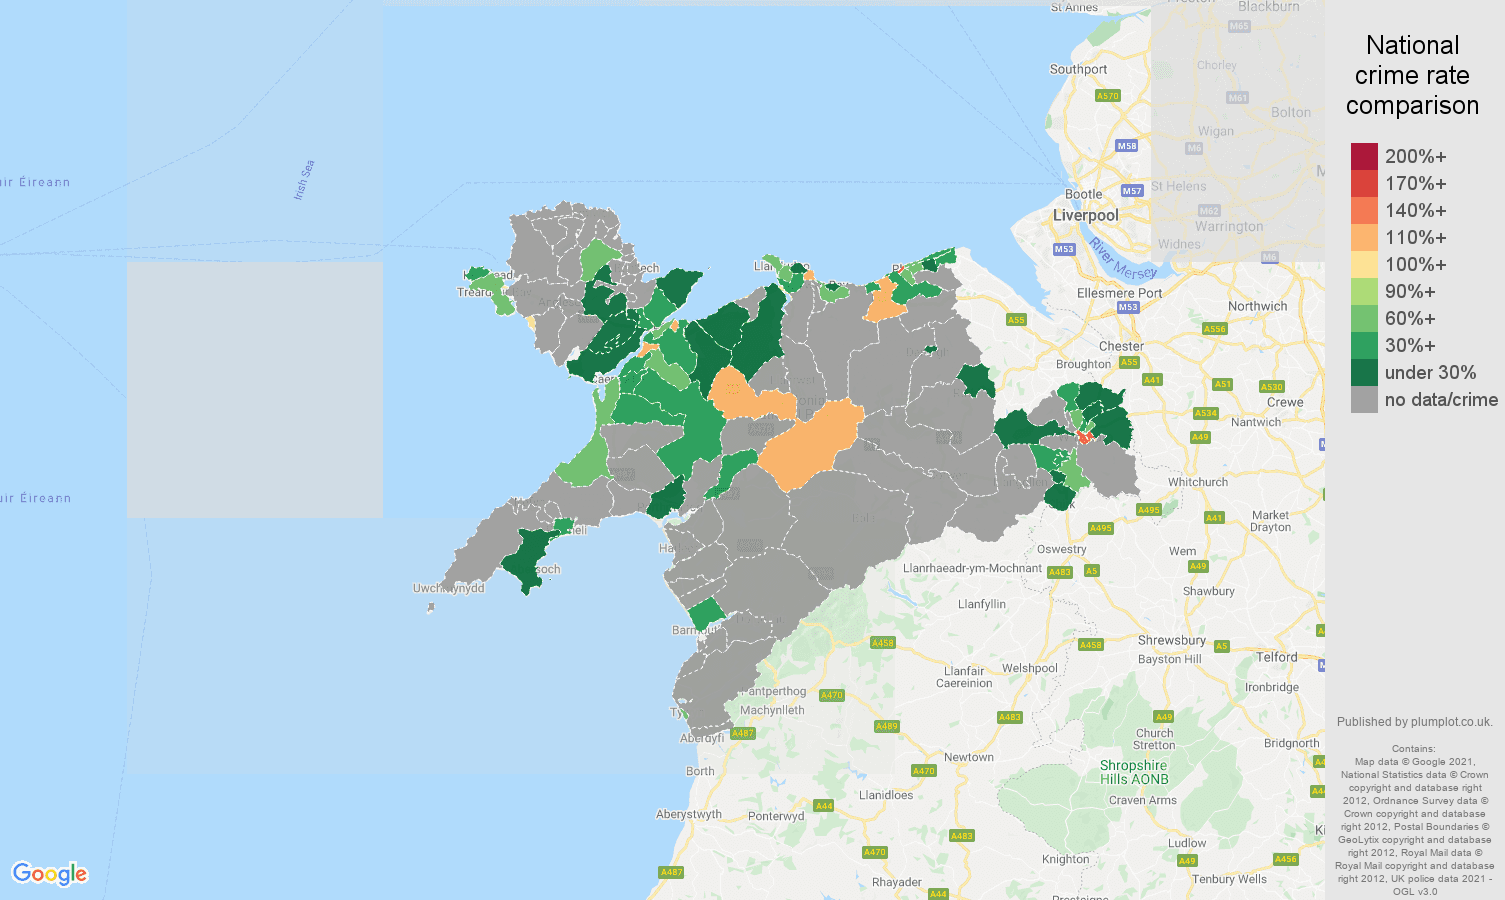 Llandudno bicycle theft crime rate comparison map